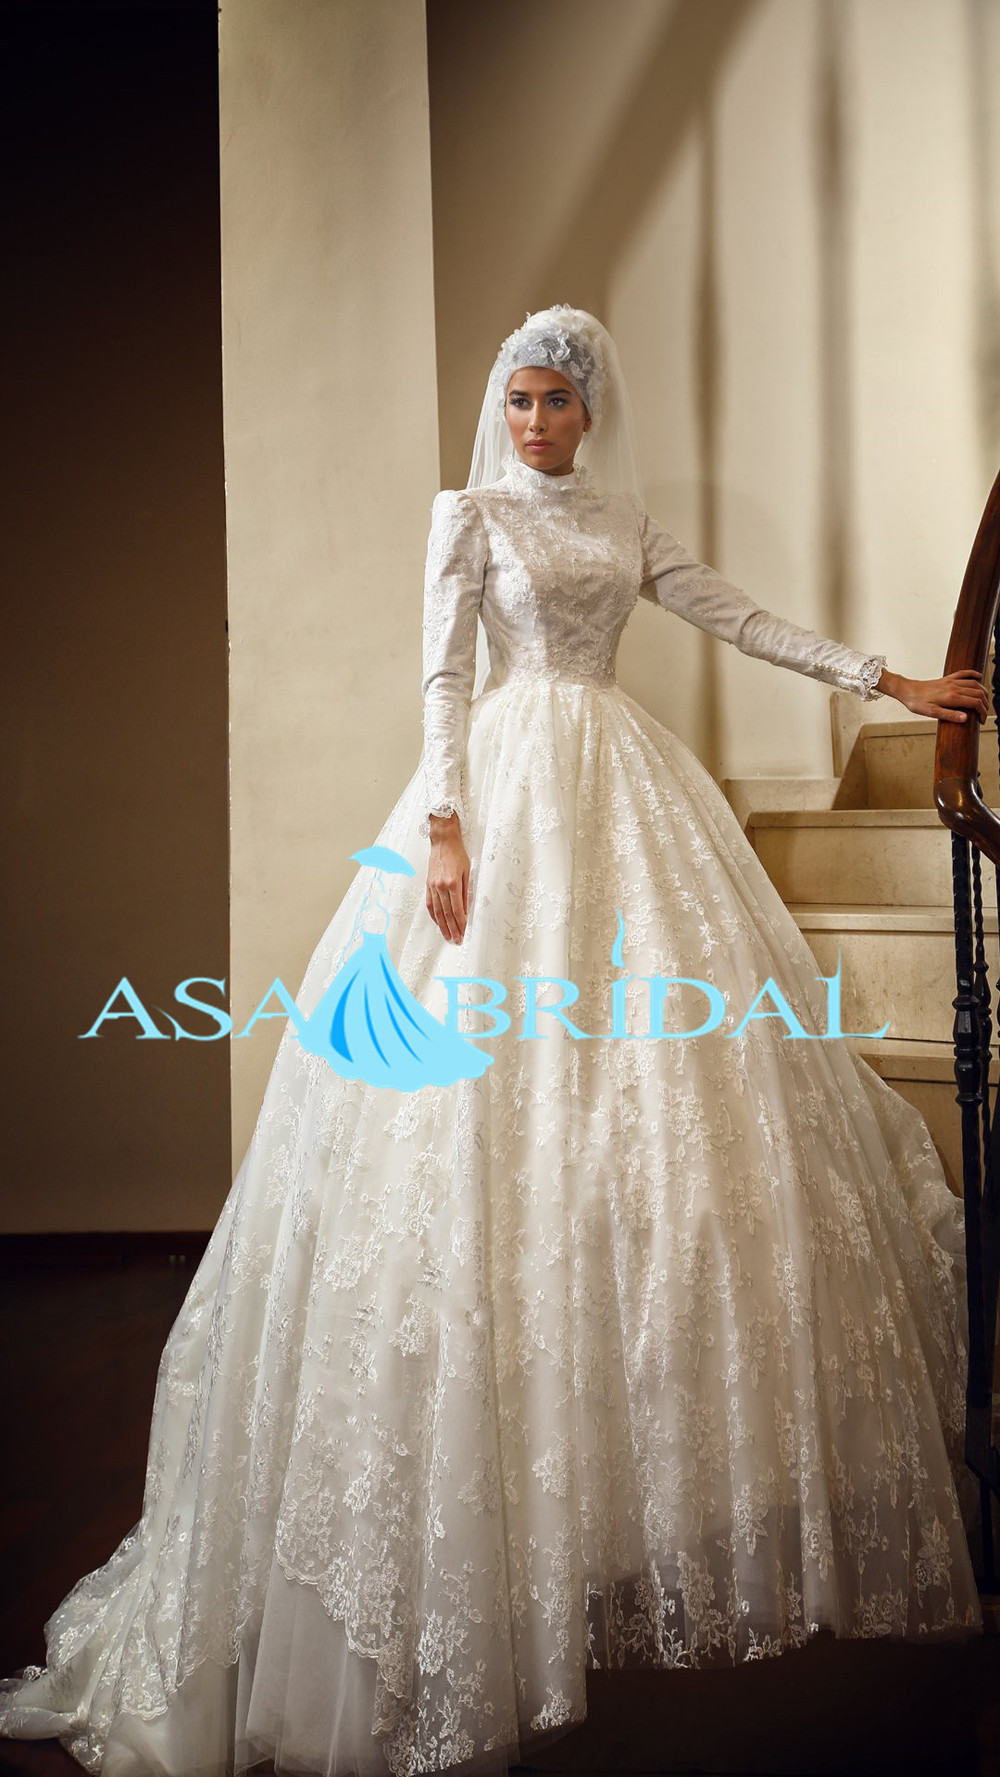 Musl 1889 Gorgeous Bridal Gowns From Dubai Gelinlik Lace Long Sleeve Beading Hijab Muslim